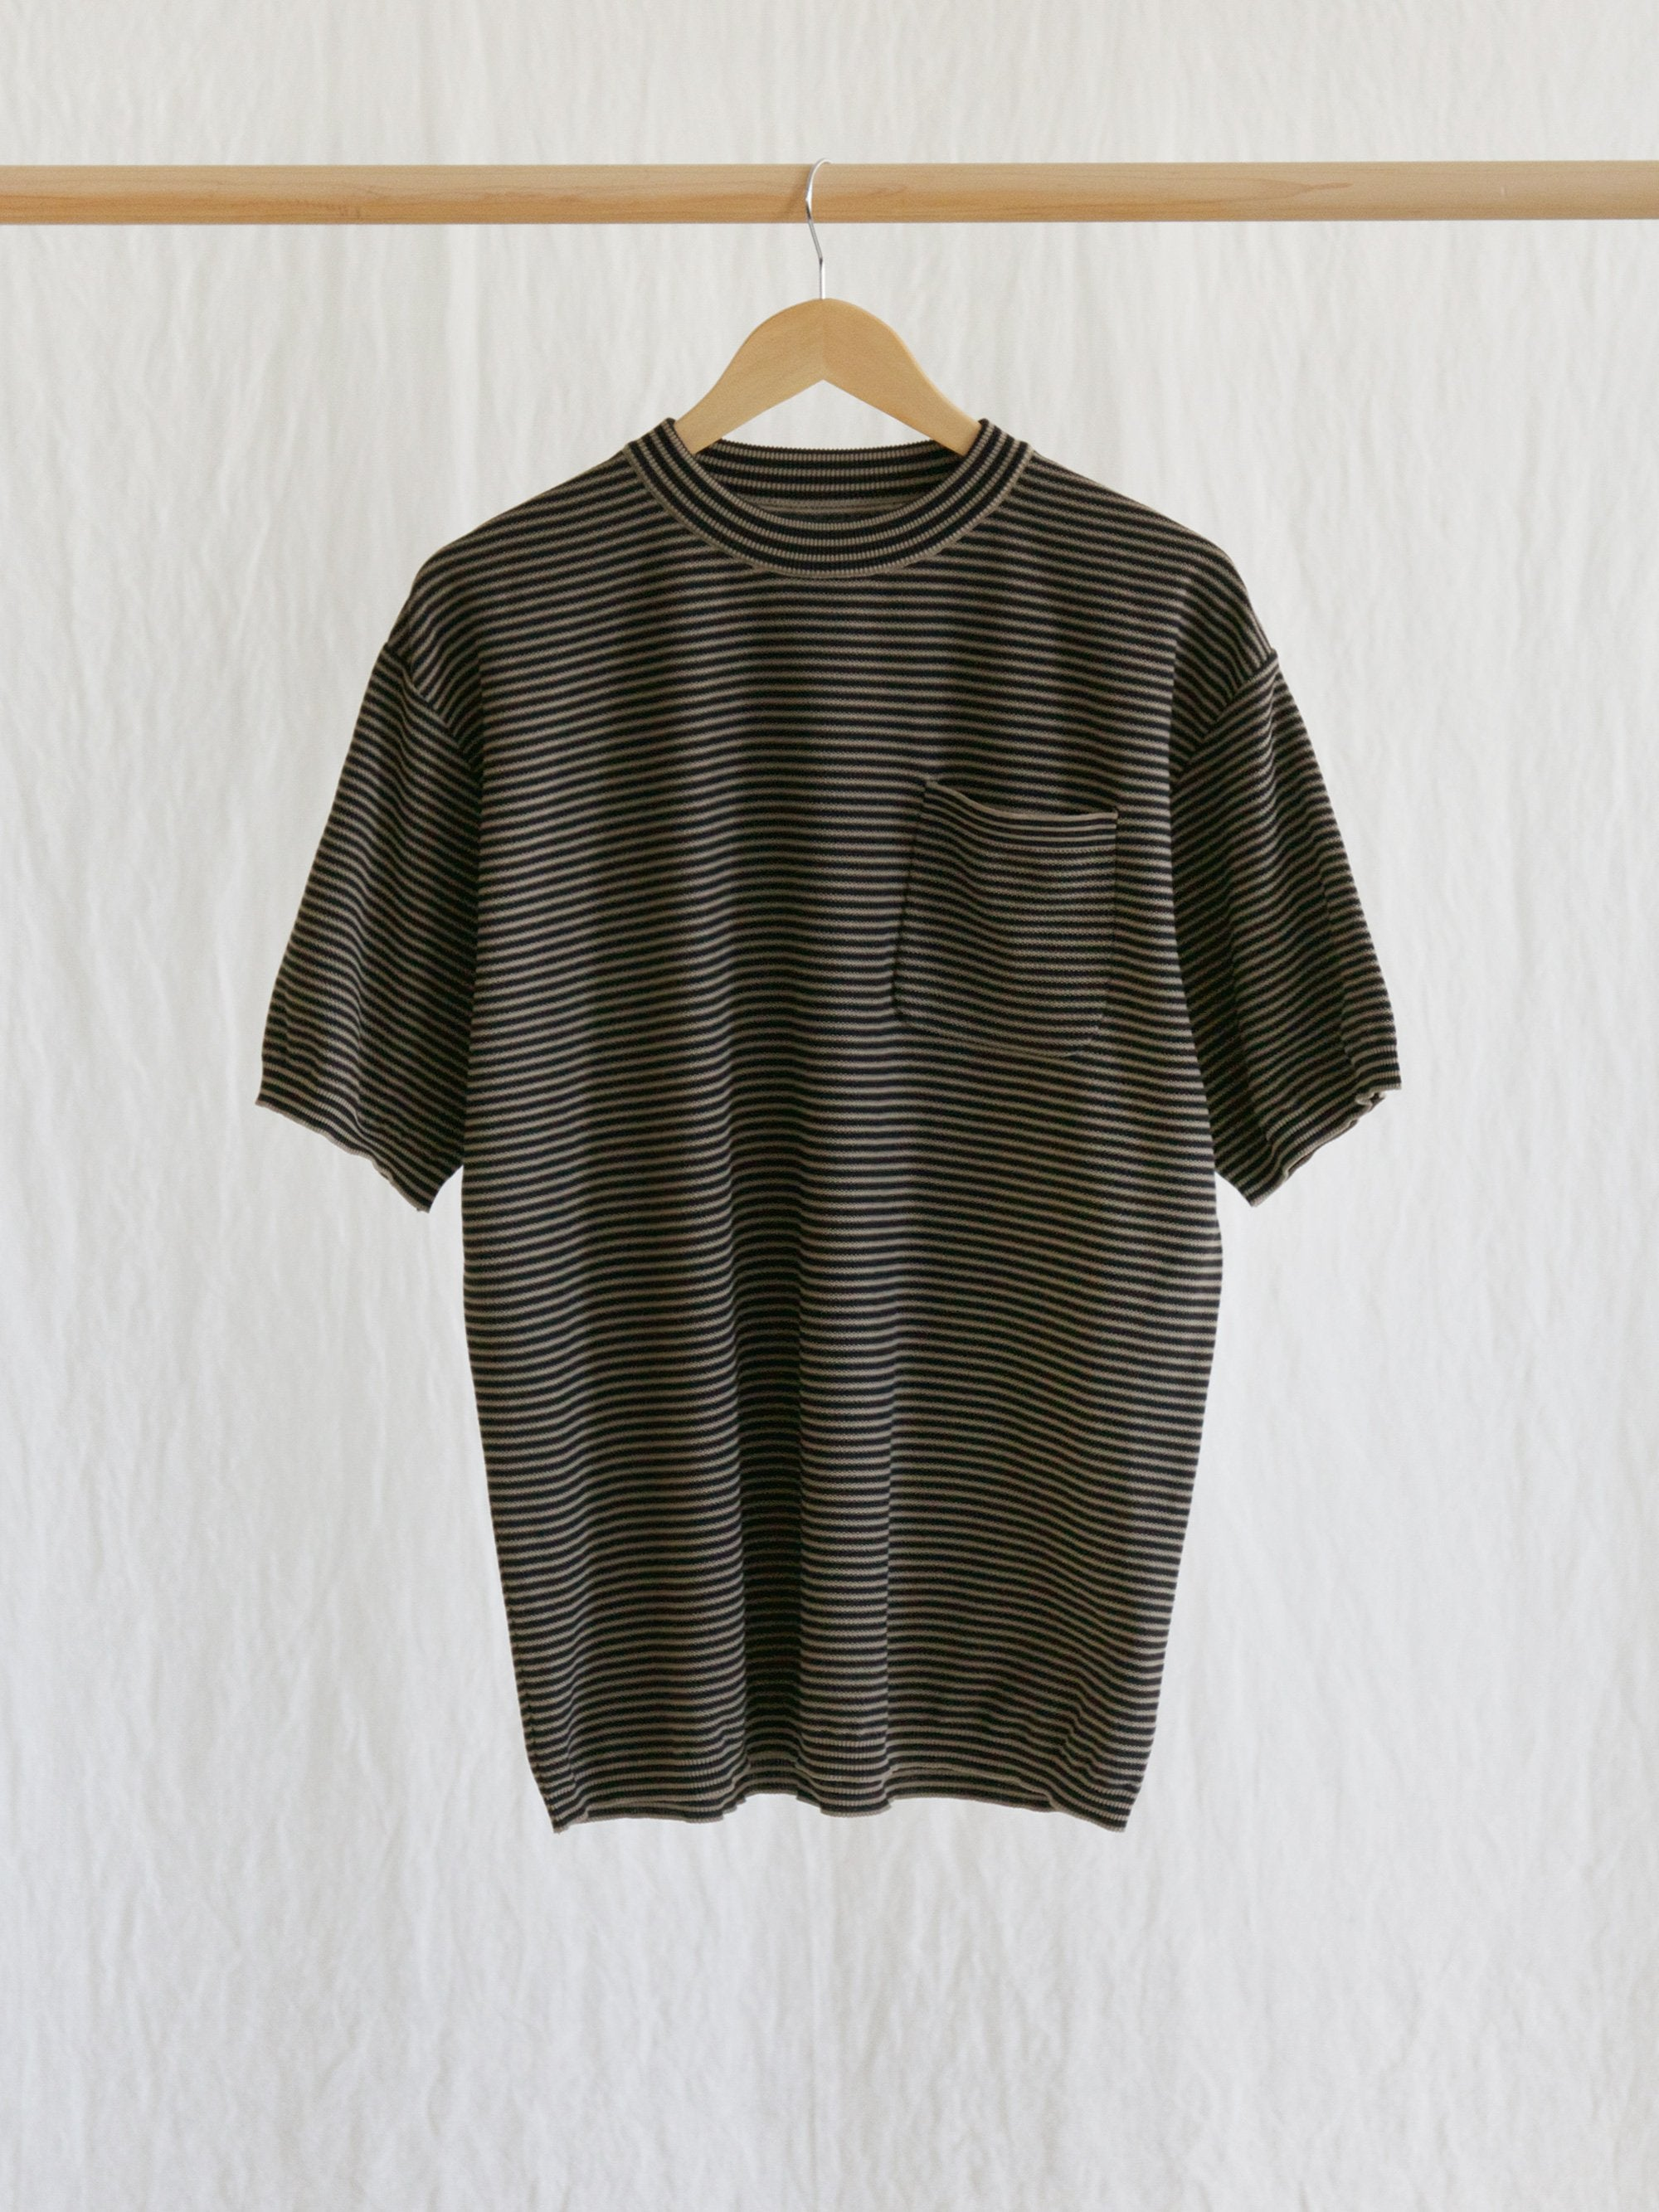 Namu Shop - Kaptain Sunshine Pocket Knit Tee - Black x Safari Border